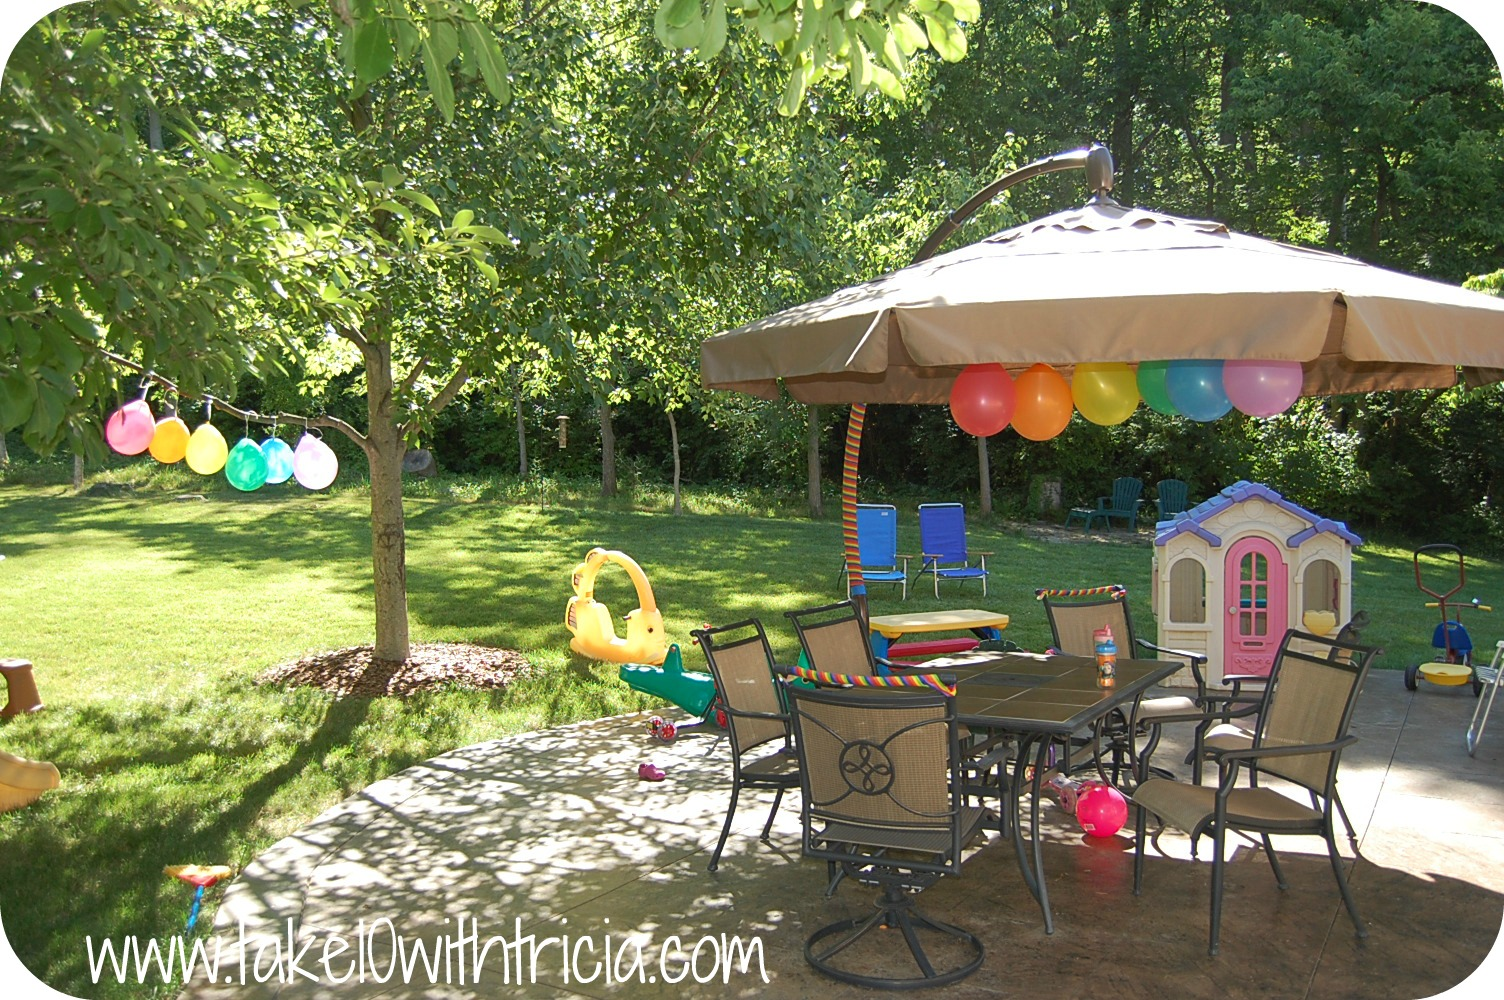 Decorations For Backyard Party : so we decorated with rainbow balloons and streamers